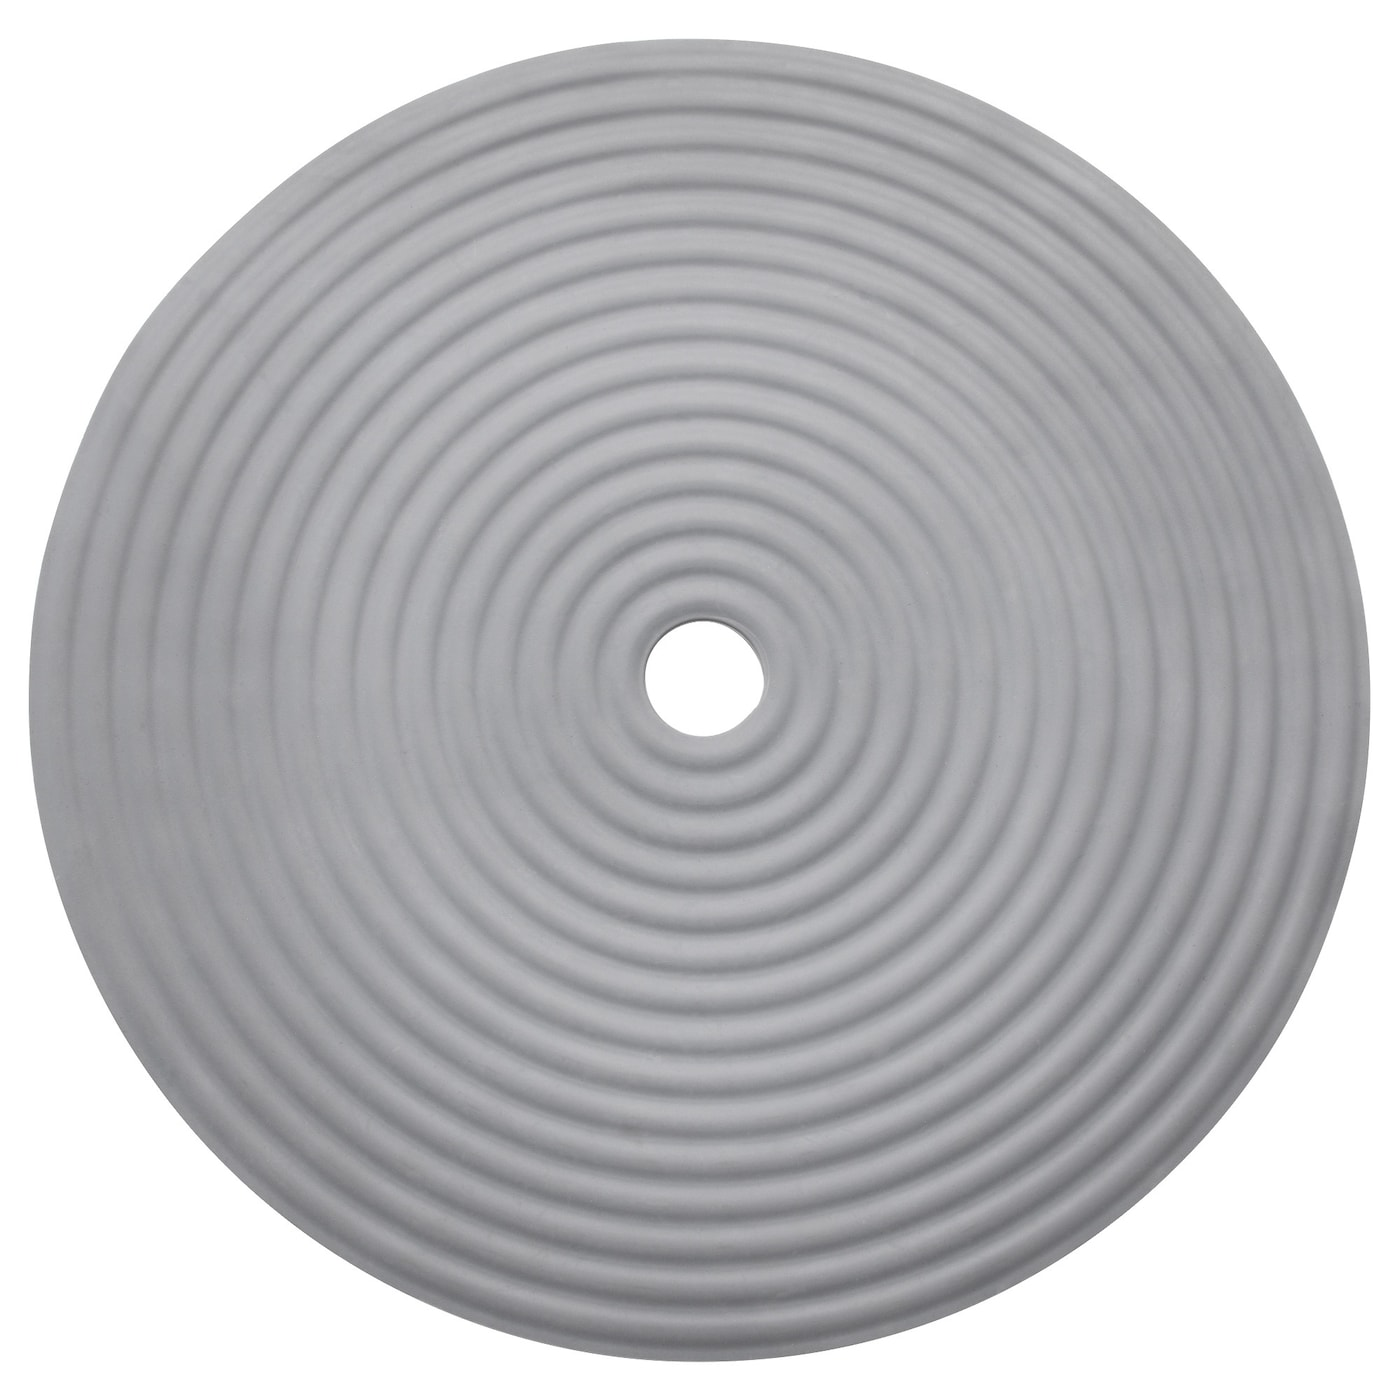 IKEA DOPPA shower mat Suction cups keep the mat safely in place in your bathtub or shower.